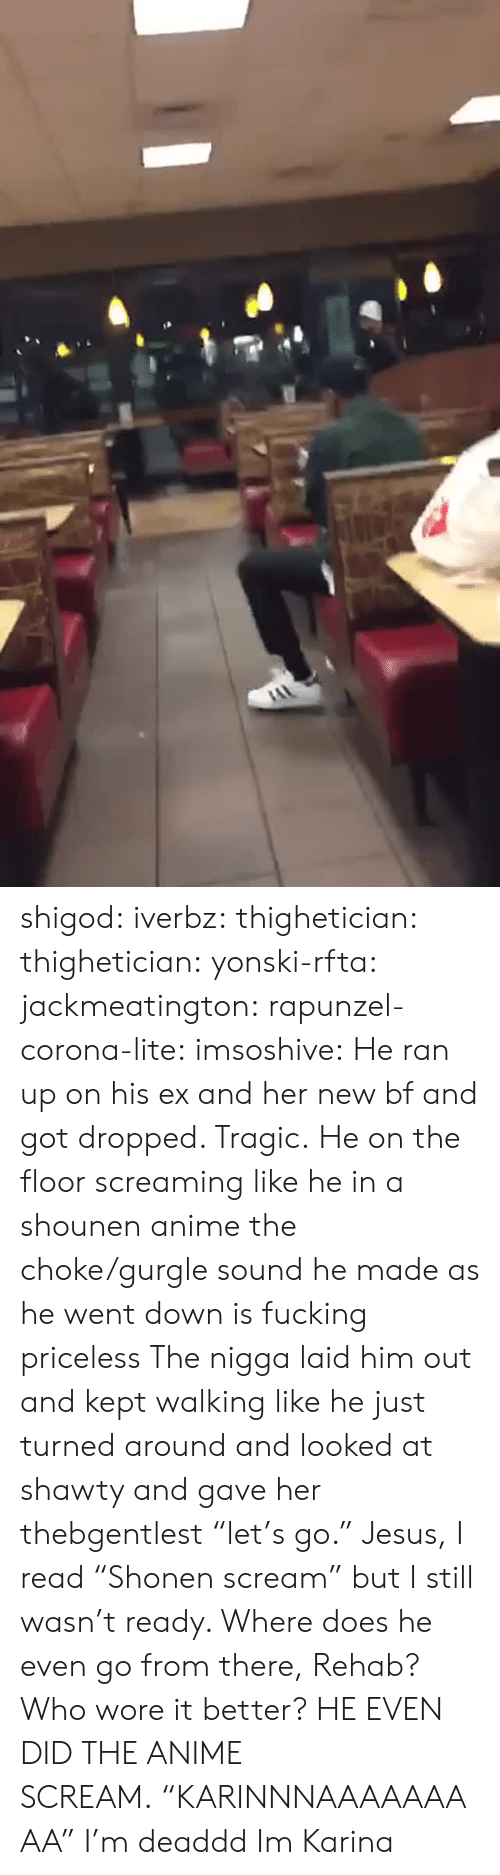 """Rapunzel: shigod: iverbz:  thighetician:  thighetician:  yonski-rfta:  jackmeatington:  rapunzel-corona-lite:  imsoshive:  He ran up on his ex and her new bf and got dropped.   Tragic.  He on the floor screaming like he in a shounen anime  the choke/gurgle sound he made as he went down is fucking priceless  The nigga laid him out and kept walking like he just turned around and looked at shawty and gave her thebgentlest """"let's go.""""  Jesus, I read """"Shonen scream"""" but I still wasn't ready.  Where does he even go from there, Rehab?  Who wore it better?  HE EVEN DID THE ANIME SCREAM.""""KARINNNAAAAAAAAA""""   I'm deaddd   Im Karina"""